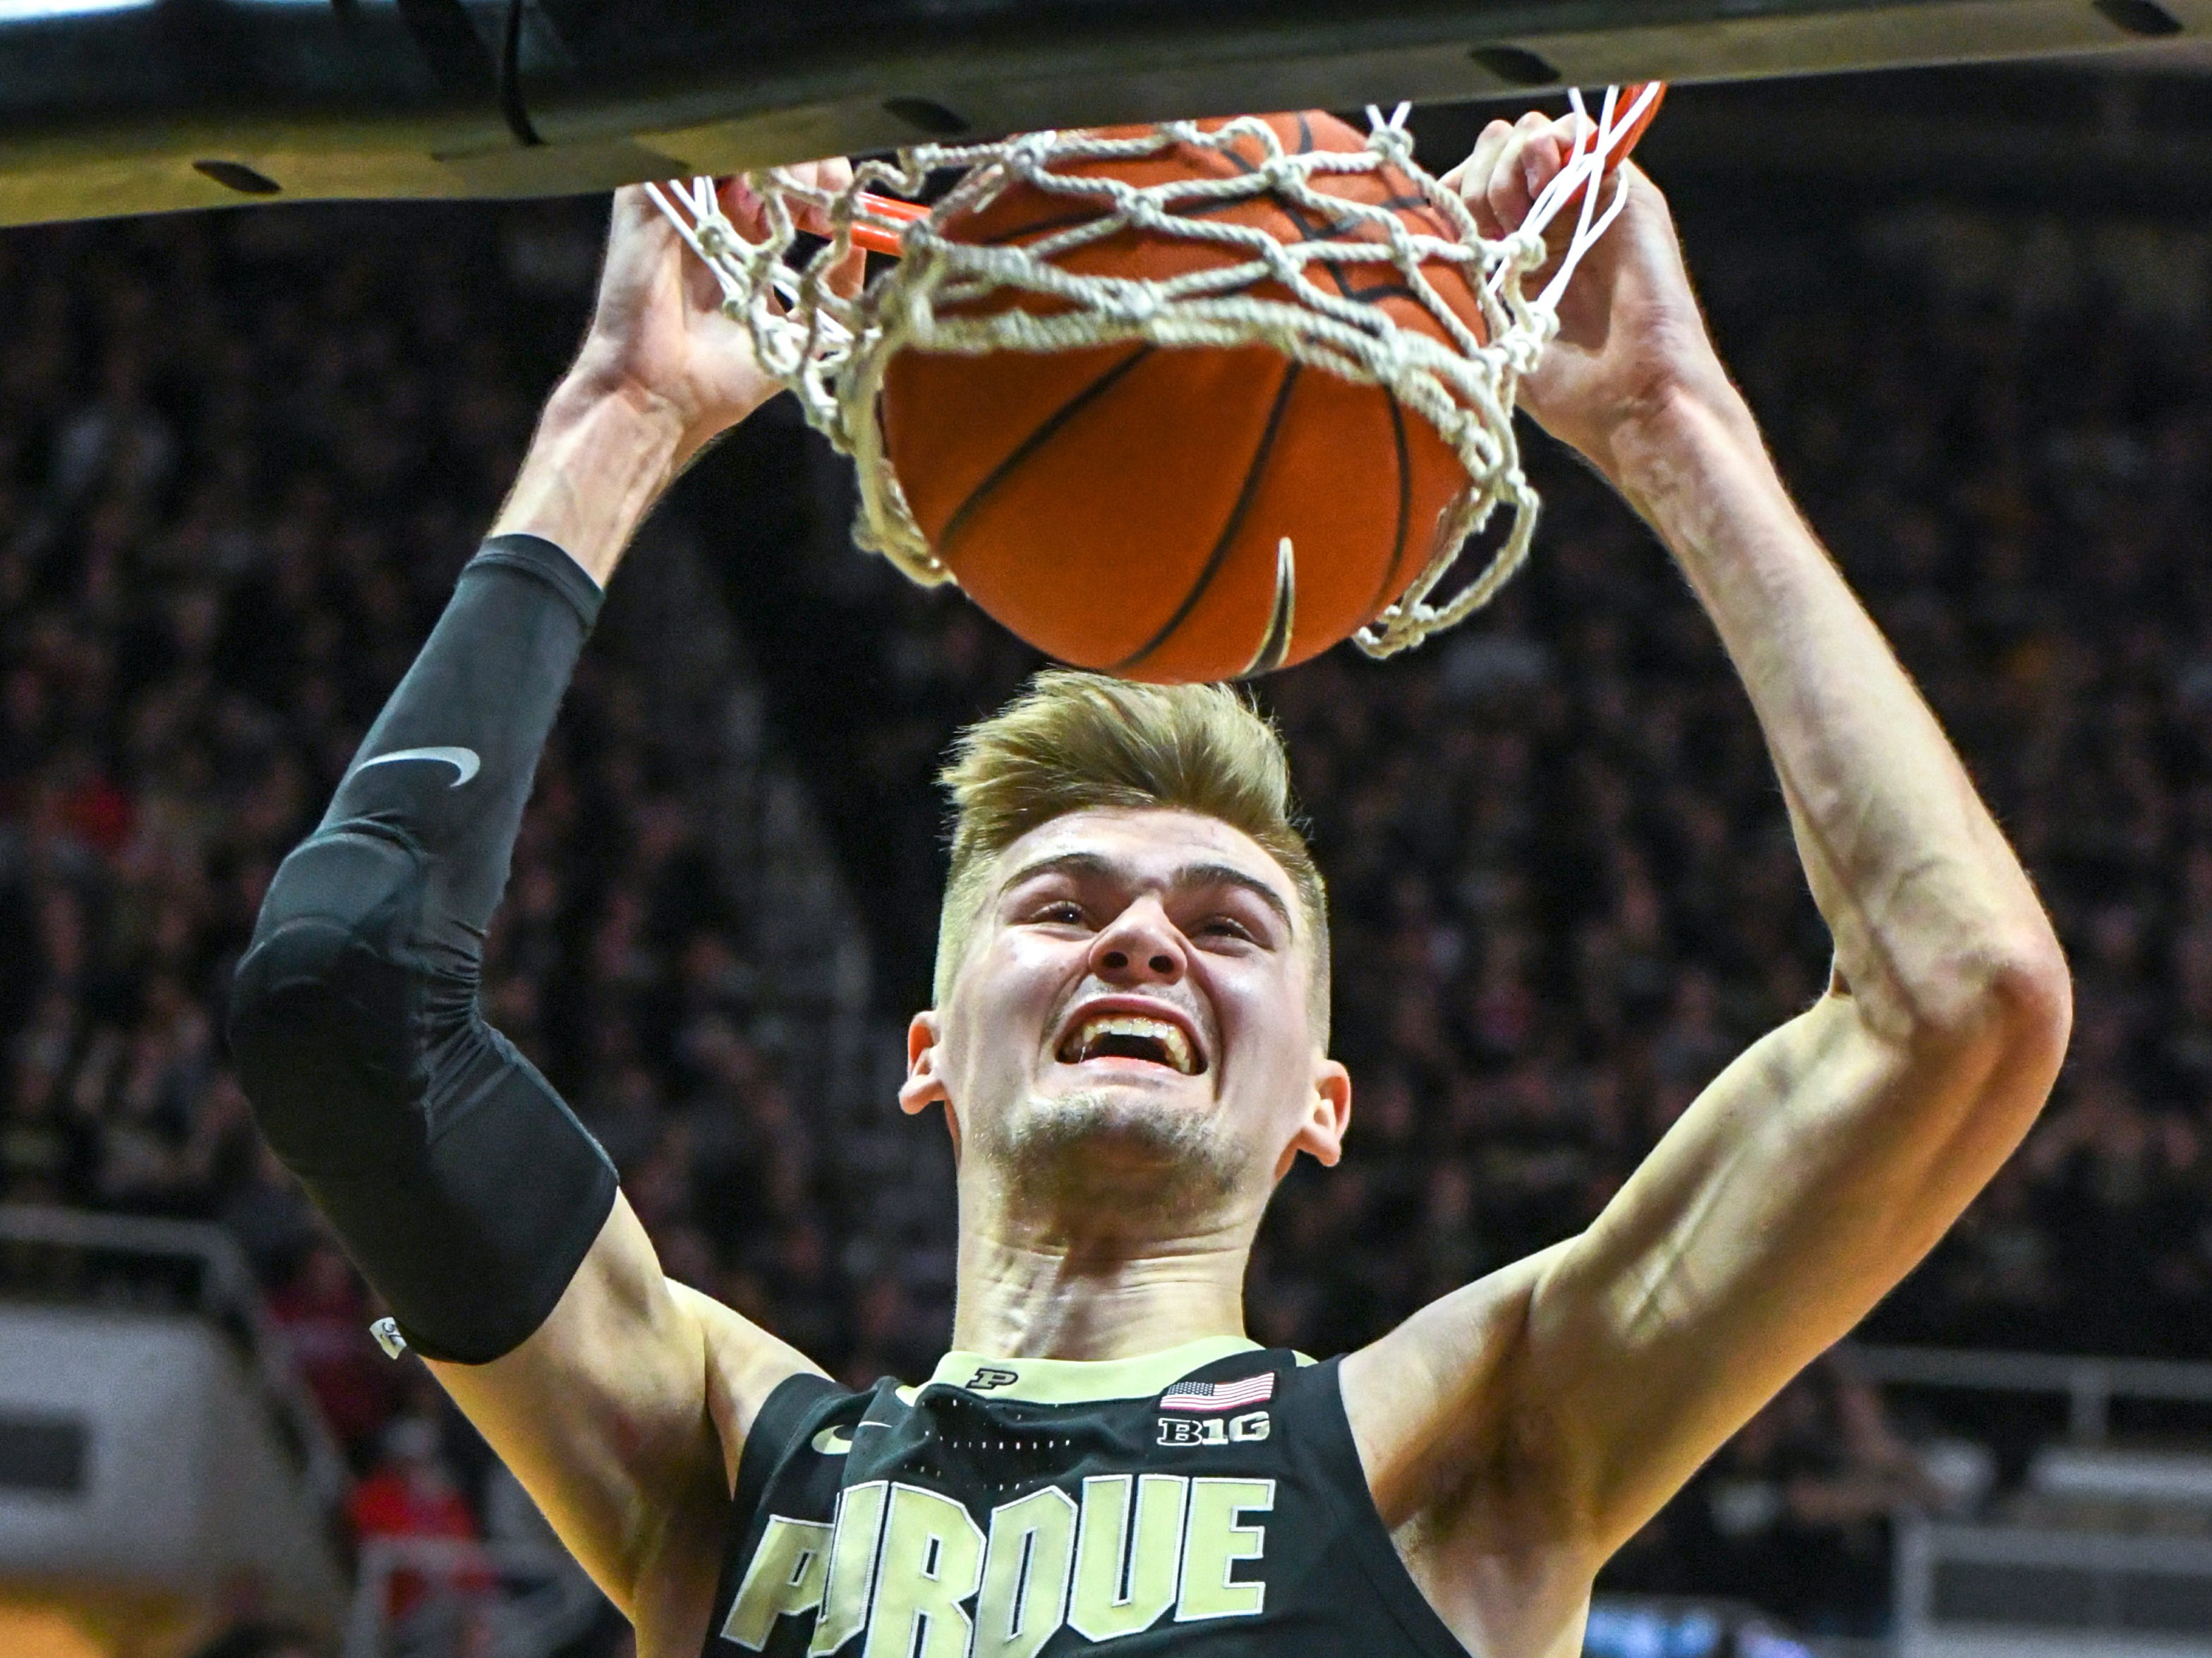 Action from Purdue against Indiana University on January 19, 2019. Purdue won the game 70-55 in West Lafayette. Matt Haarms